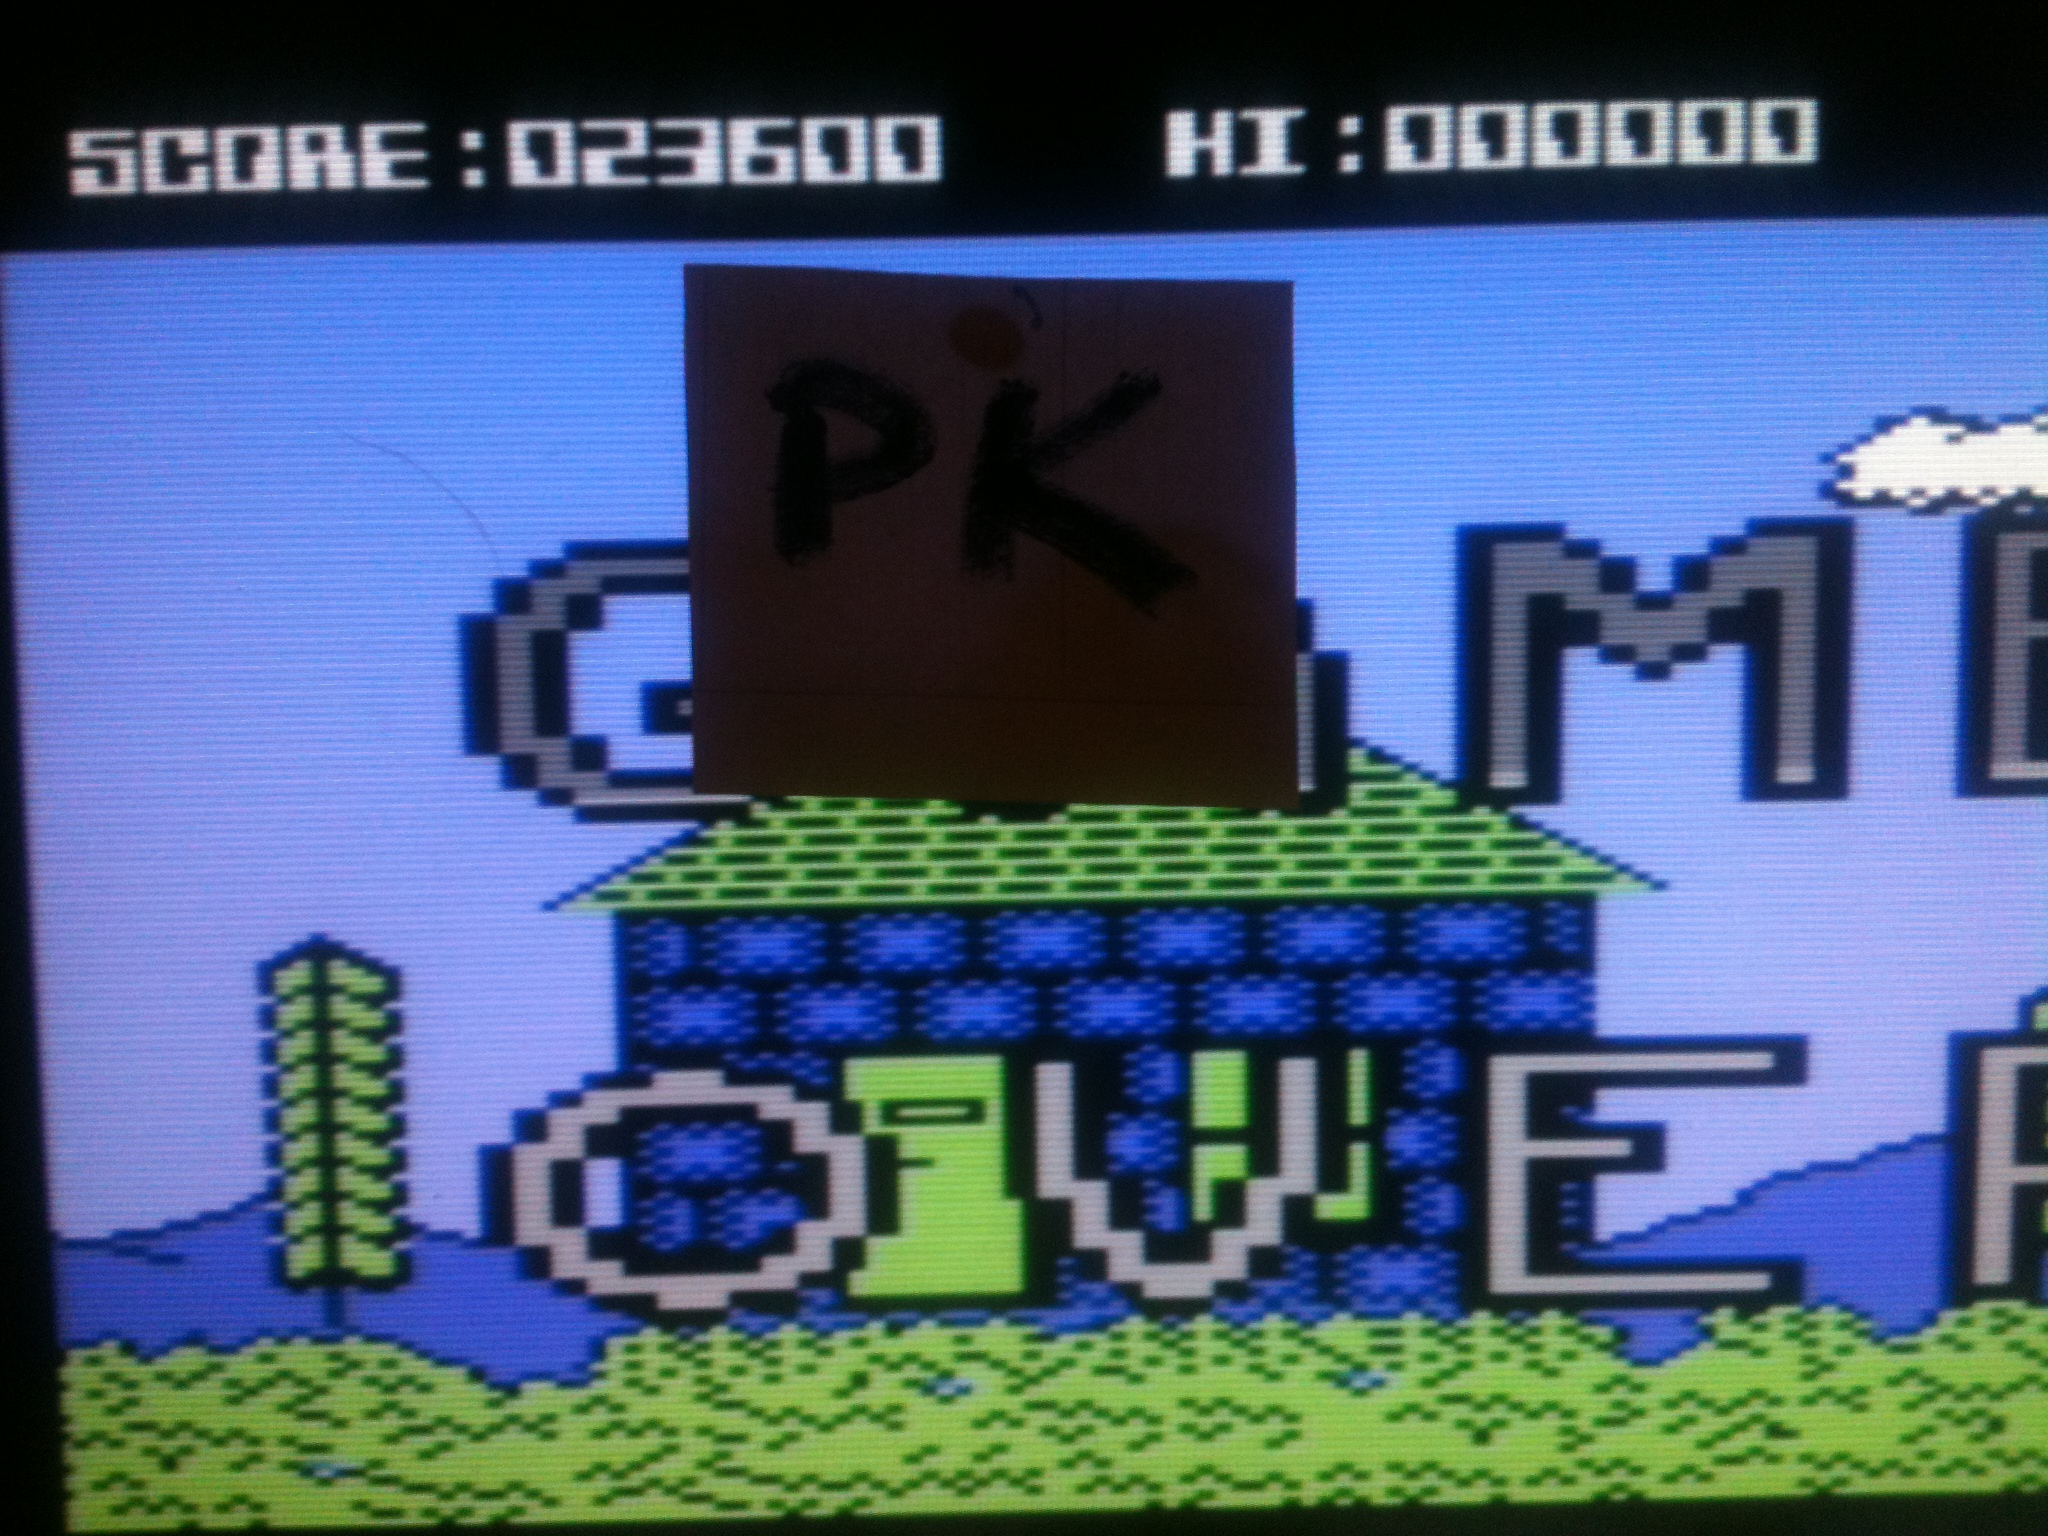 kernzy: Billy The Postman (Commodore 64 Emulated) 23,600 points on 2015-11-15 14:55:56